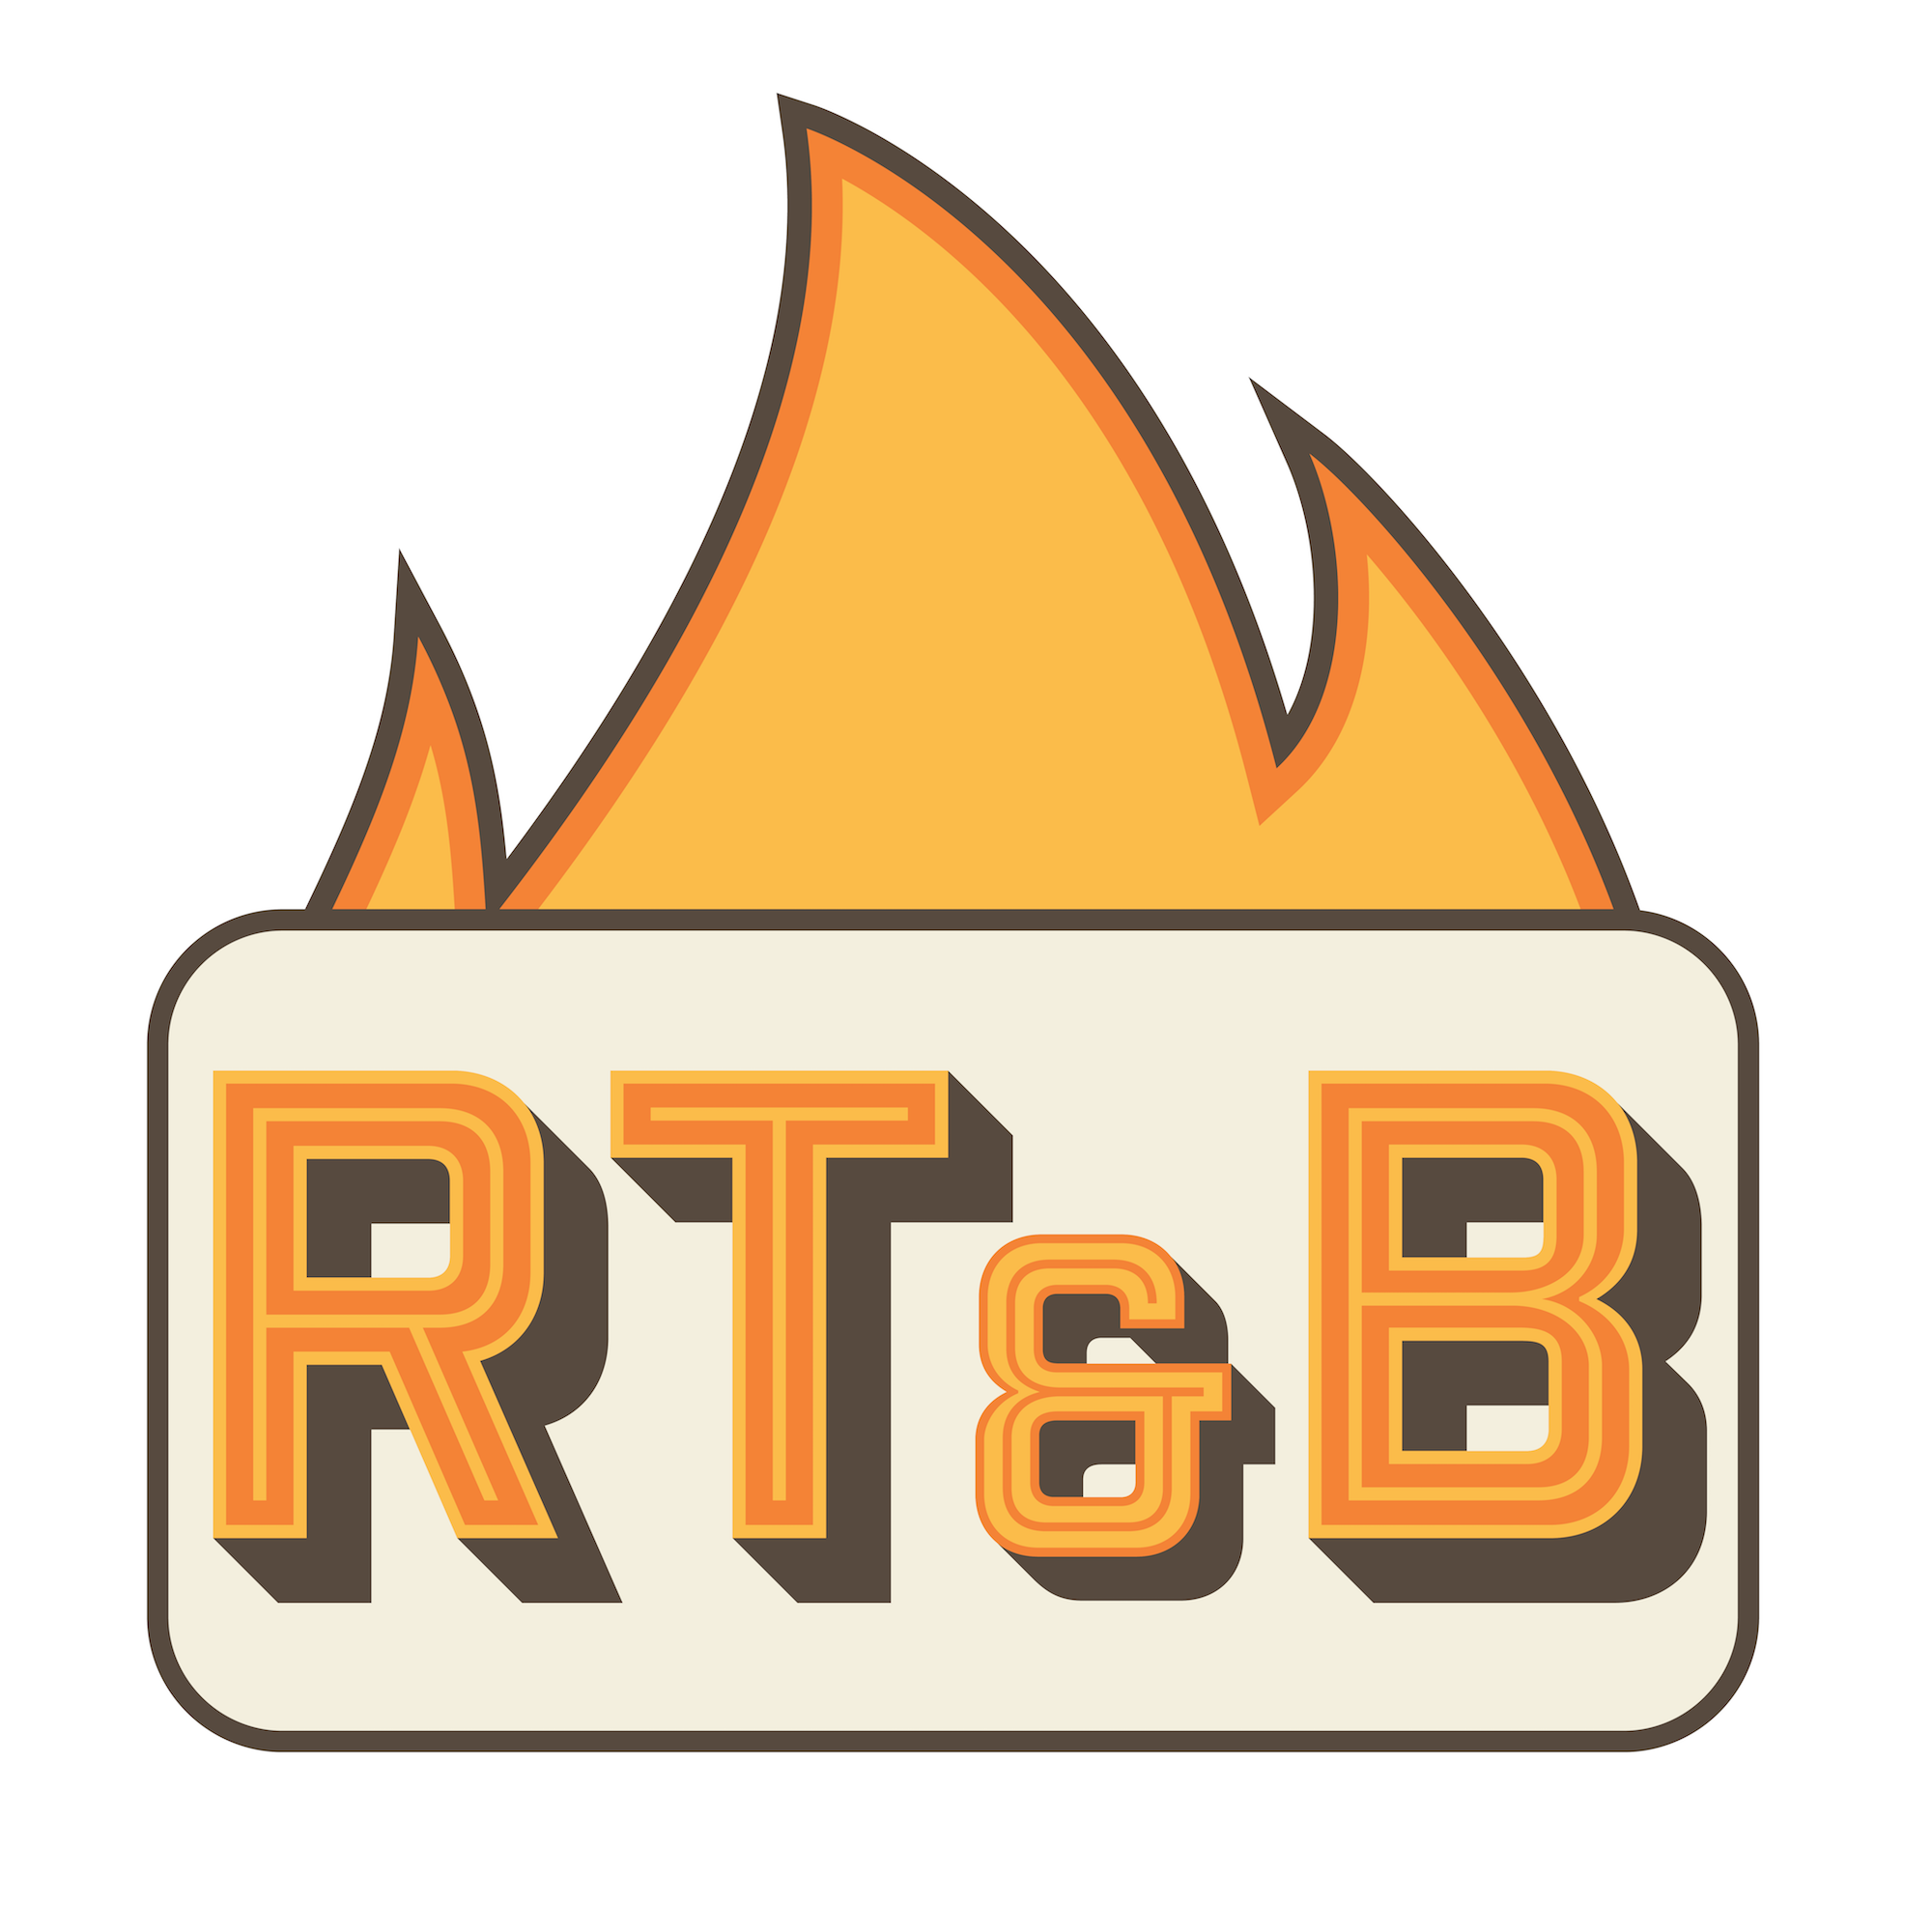 Roasted Toasted Baked food truck logo design Lafayette Indiana designed by Hagan Design Co Champaign Illinois